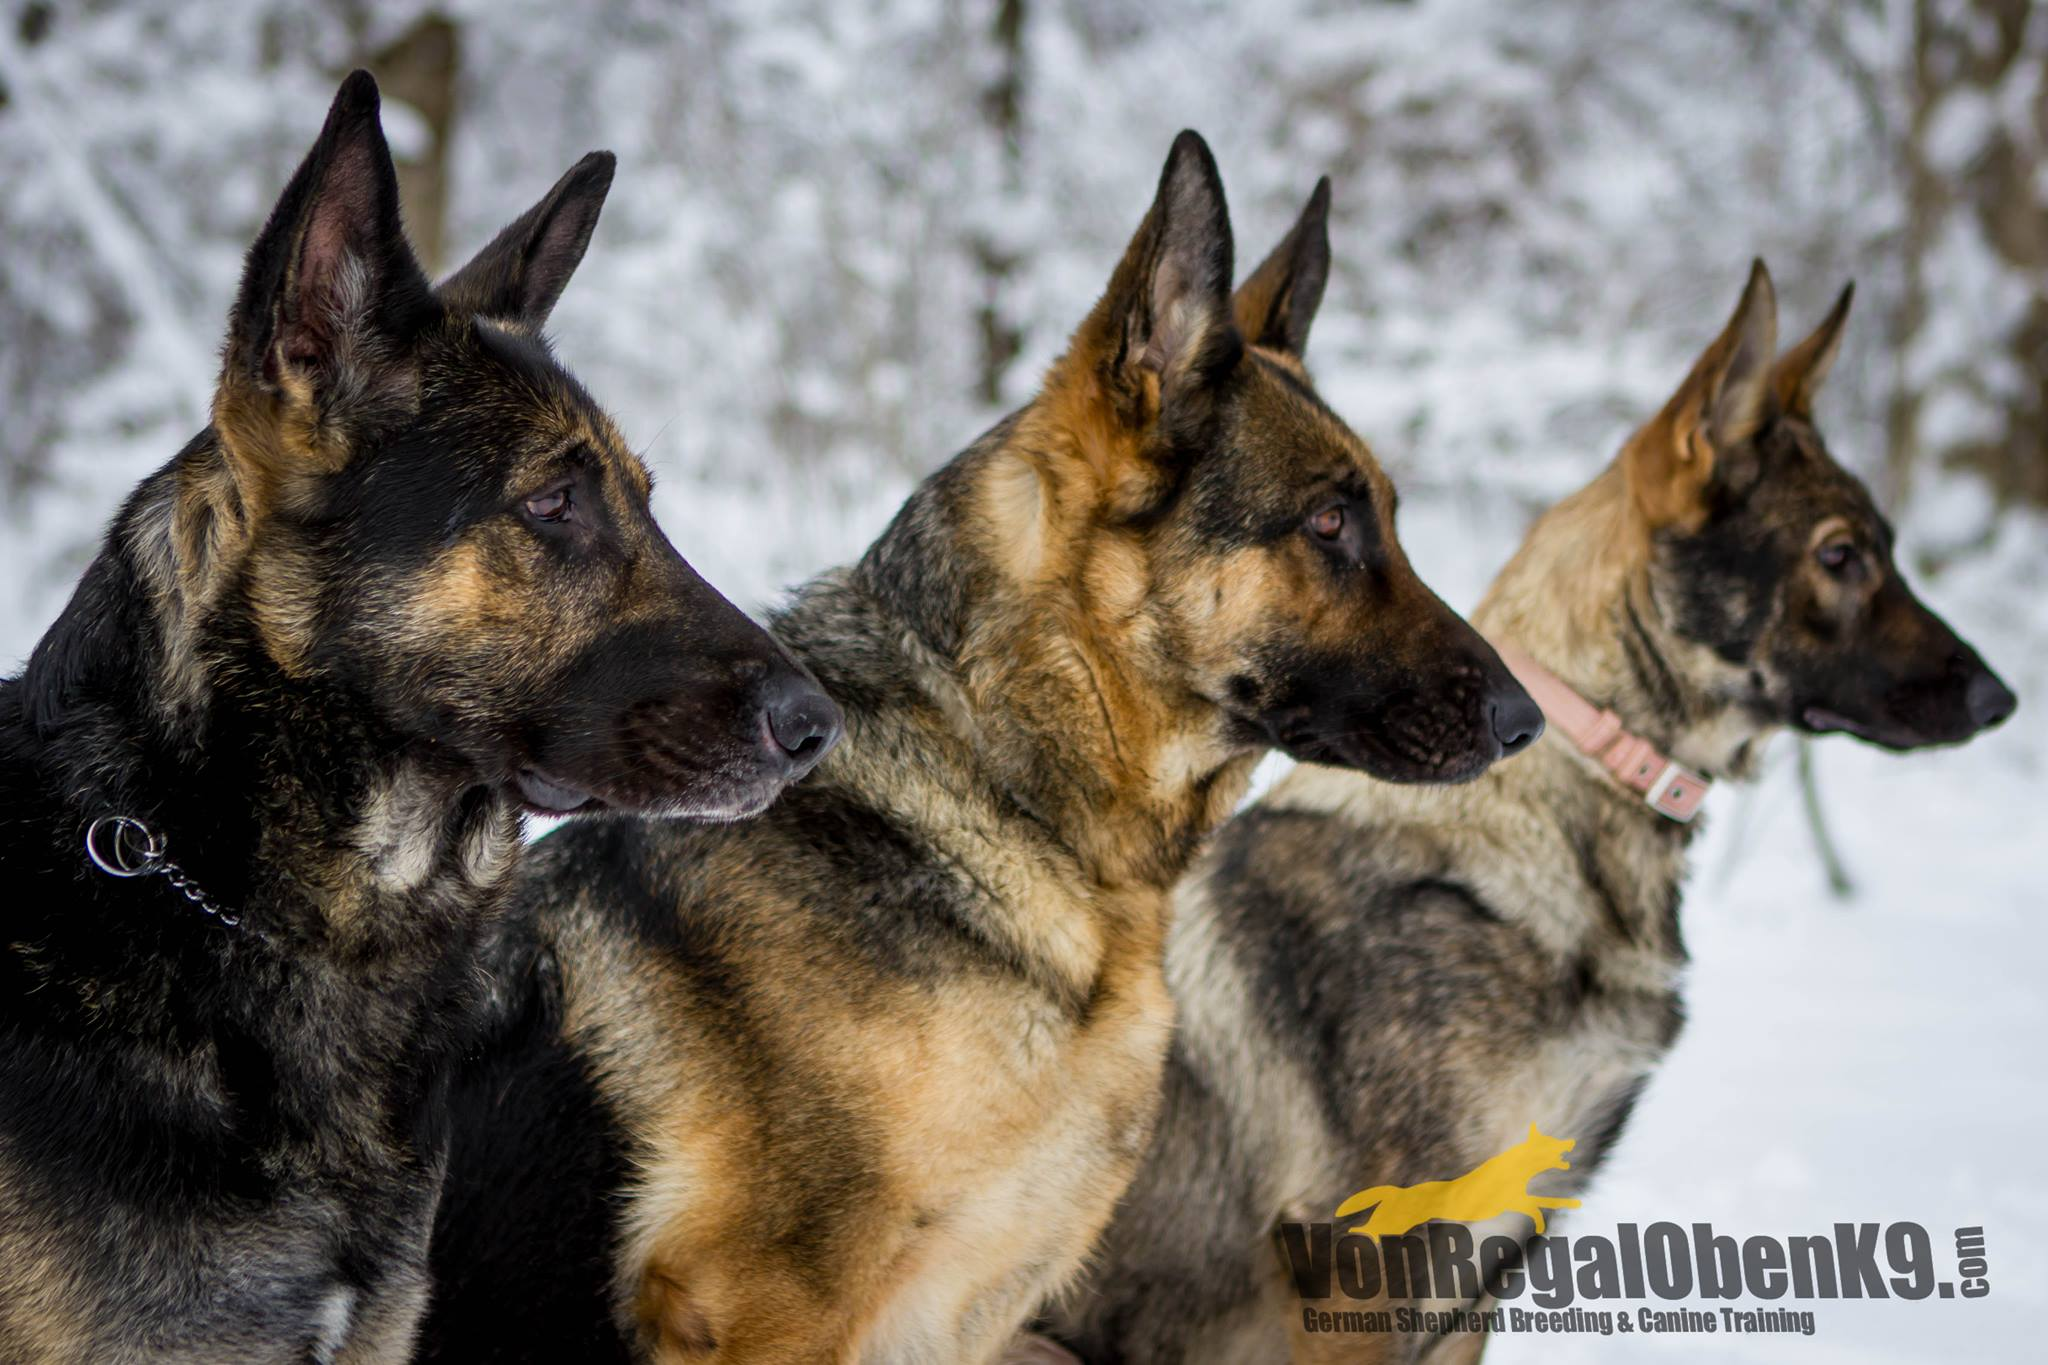 Jonas, Lacy, and Puppy Karma